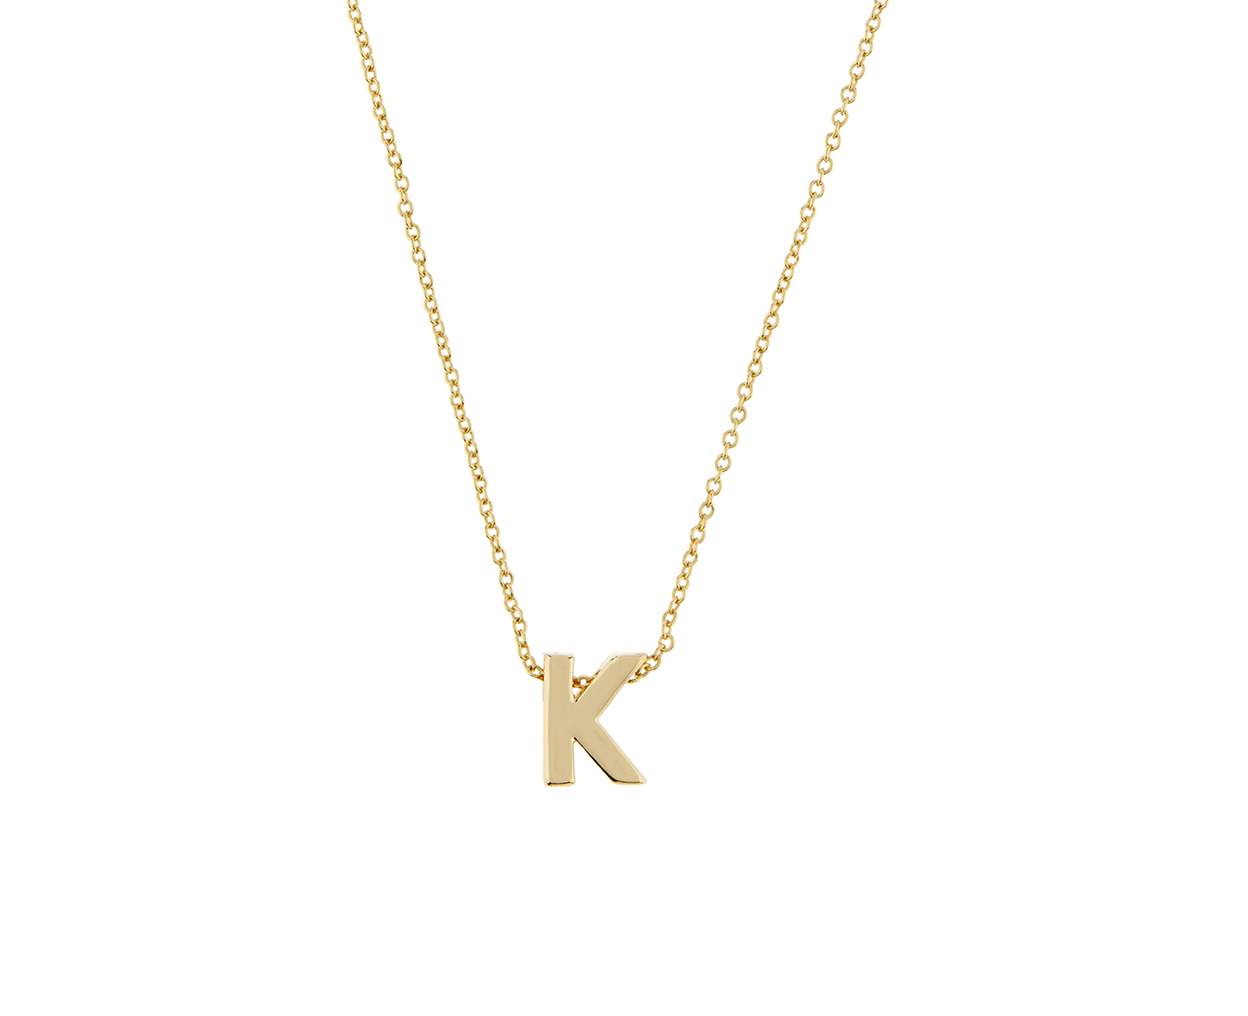 Initial k pendant necklace accessorize embellish your look with initial k pendant necklace accessorize embellish your look with a personal touch with our gold plated initial necklace the eye catching design aloadofball Image collections